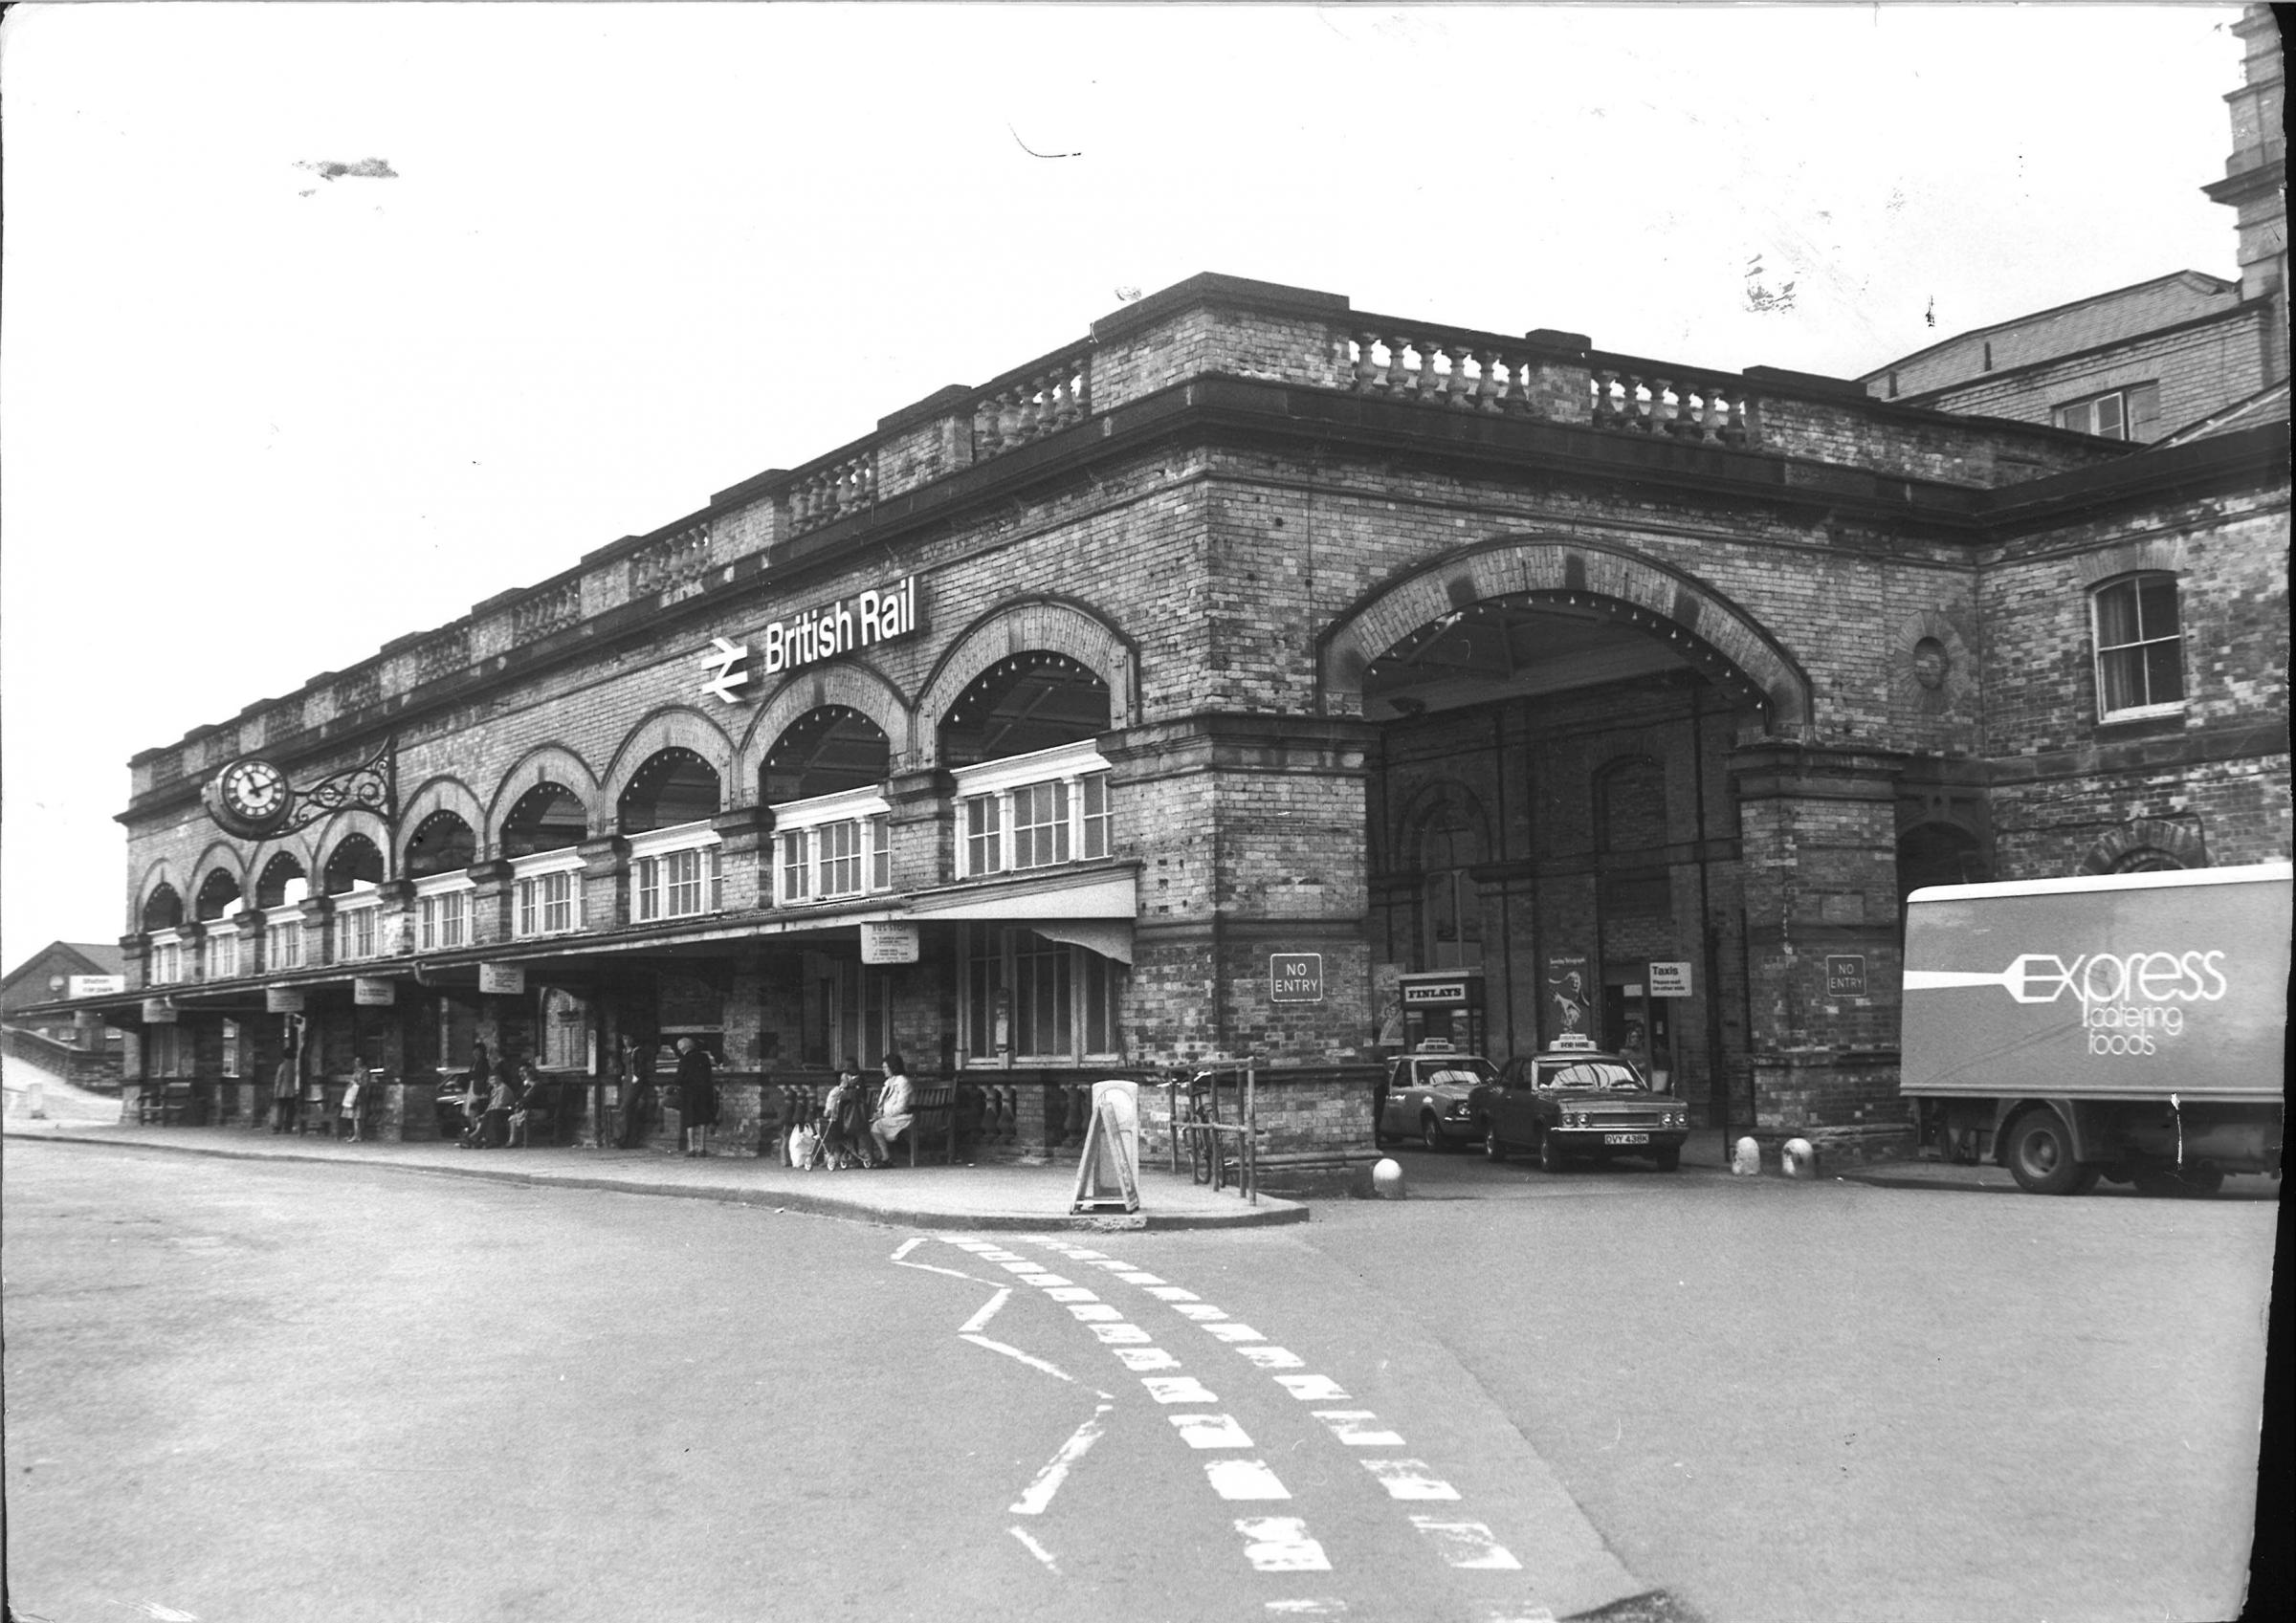 Photos of York Railway Station in years gone by